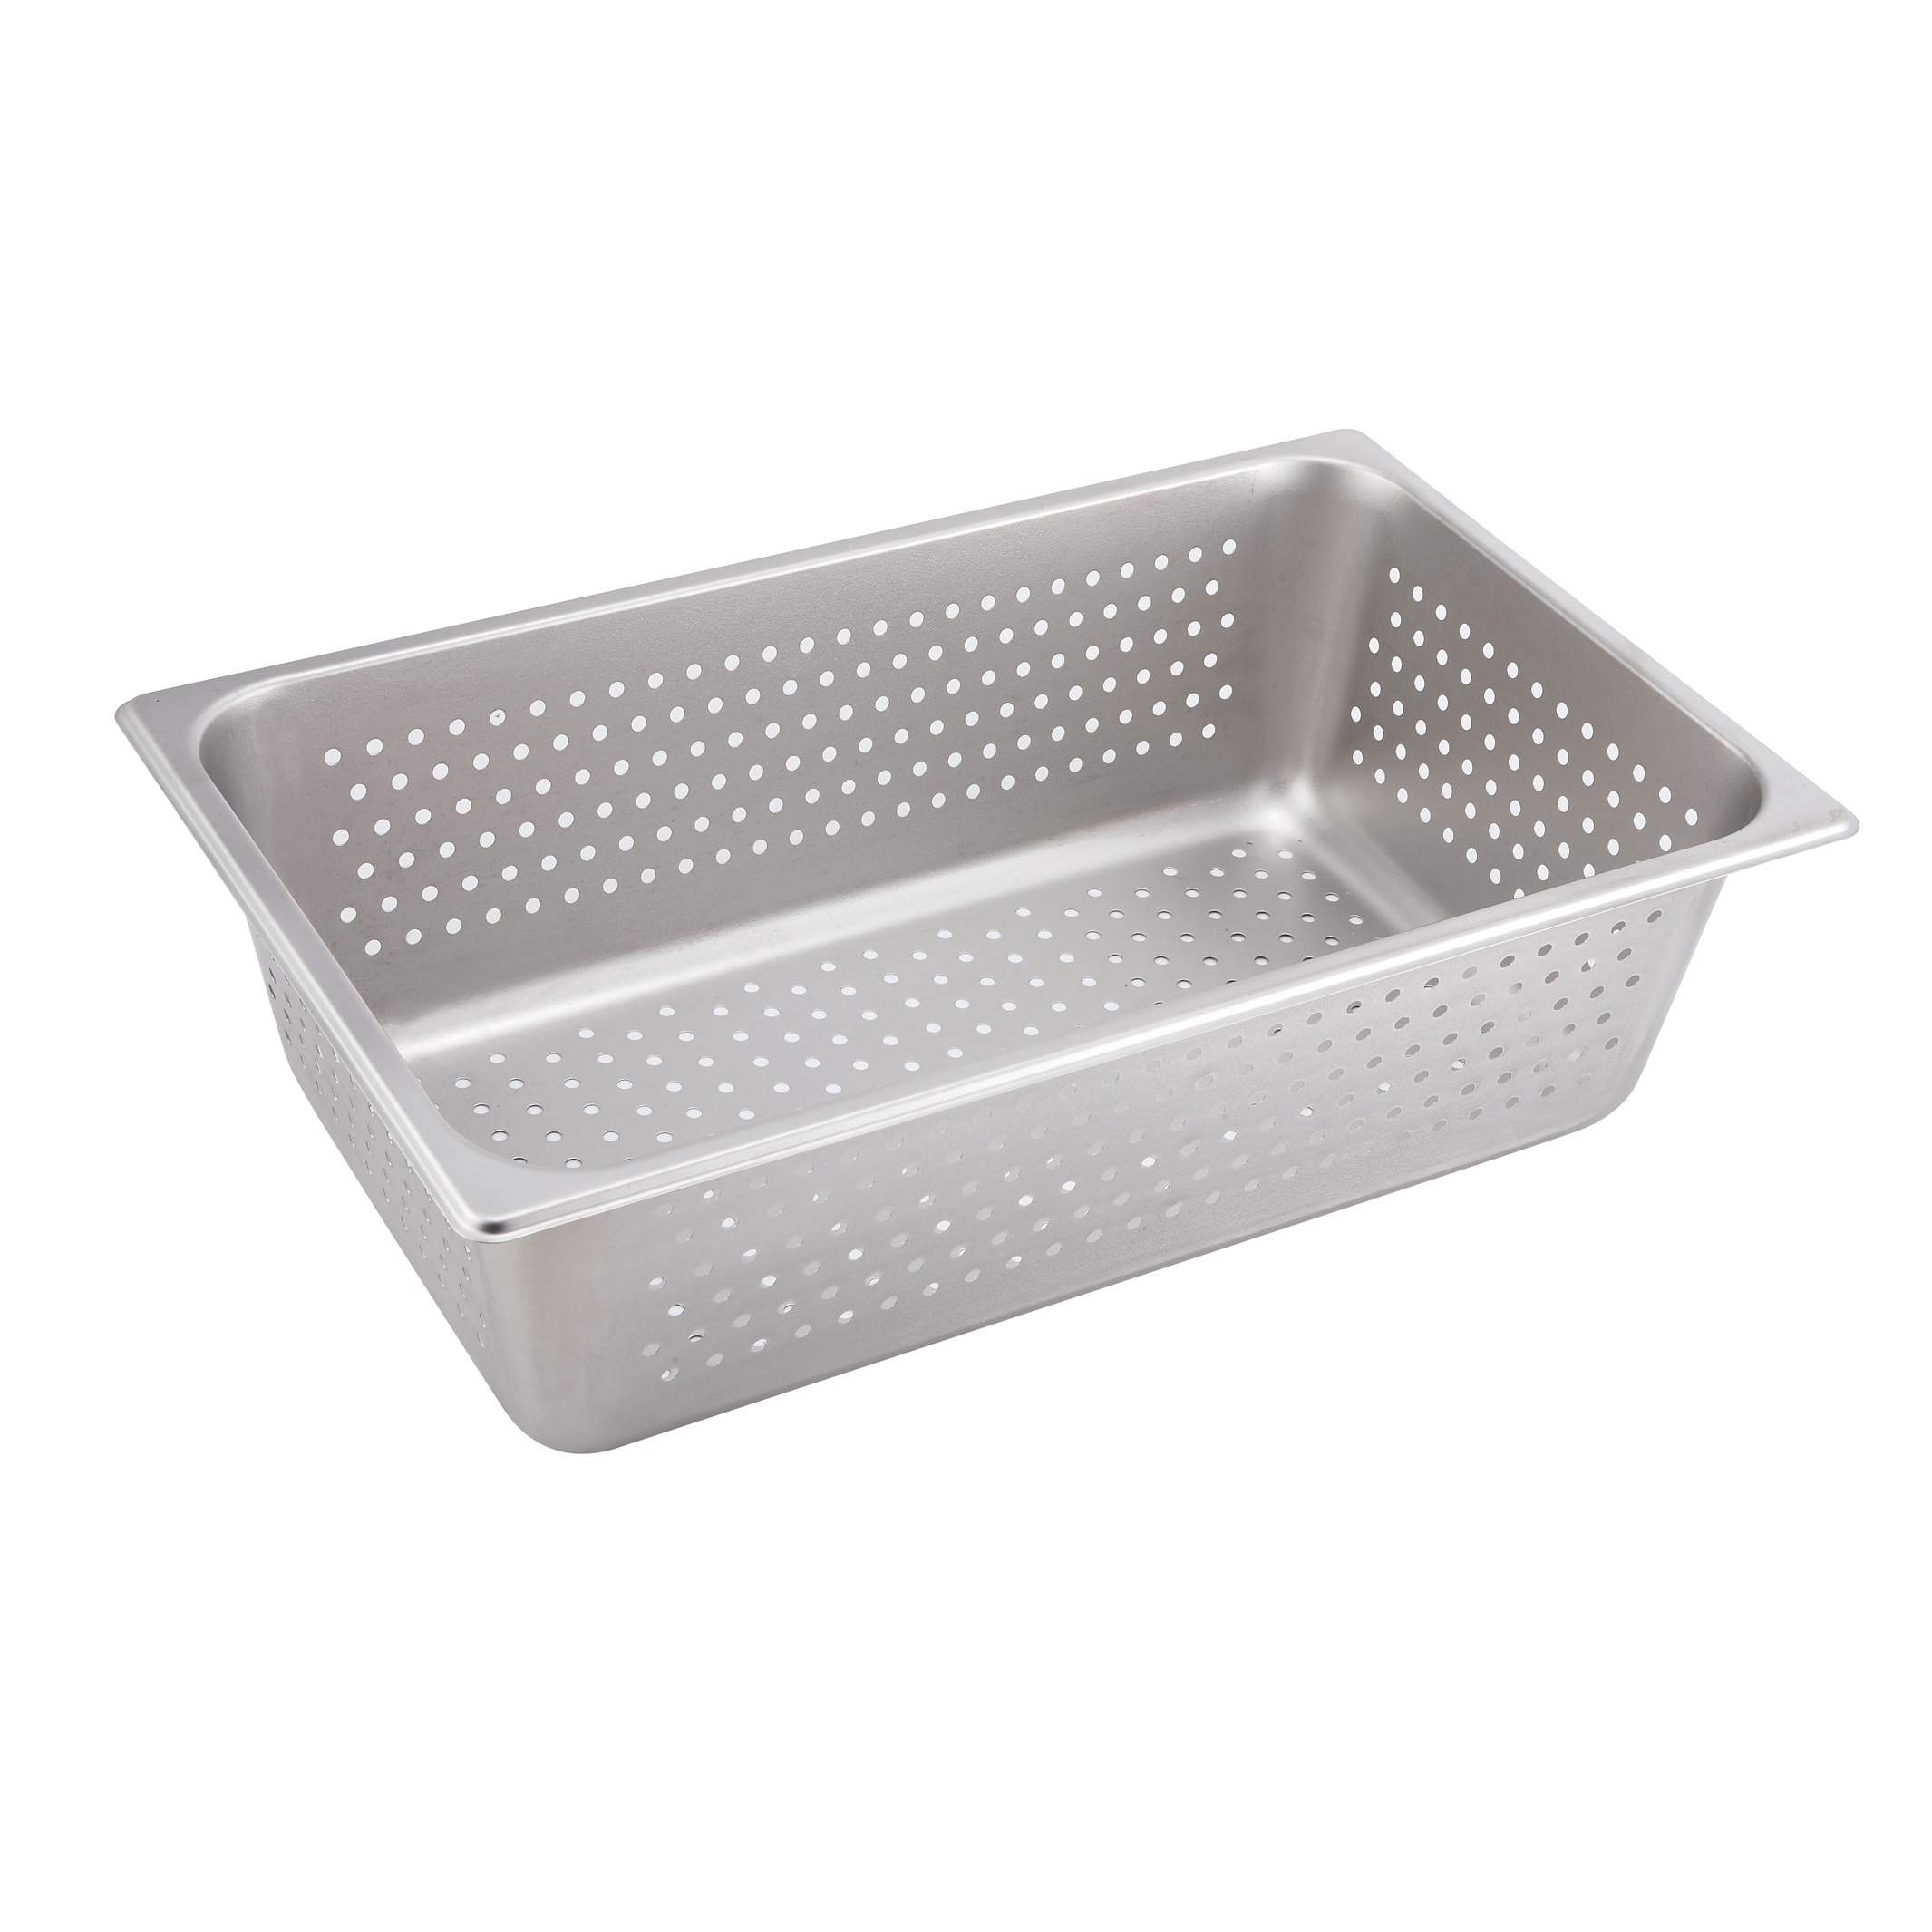 Winco SPJH-106PF steam table pan, stainless steel